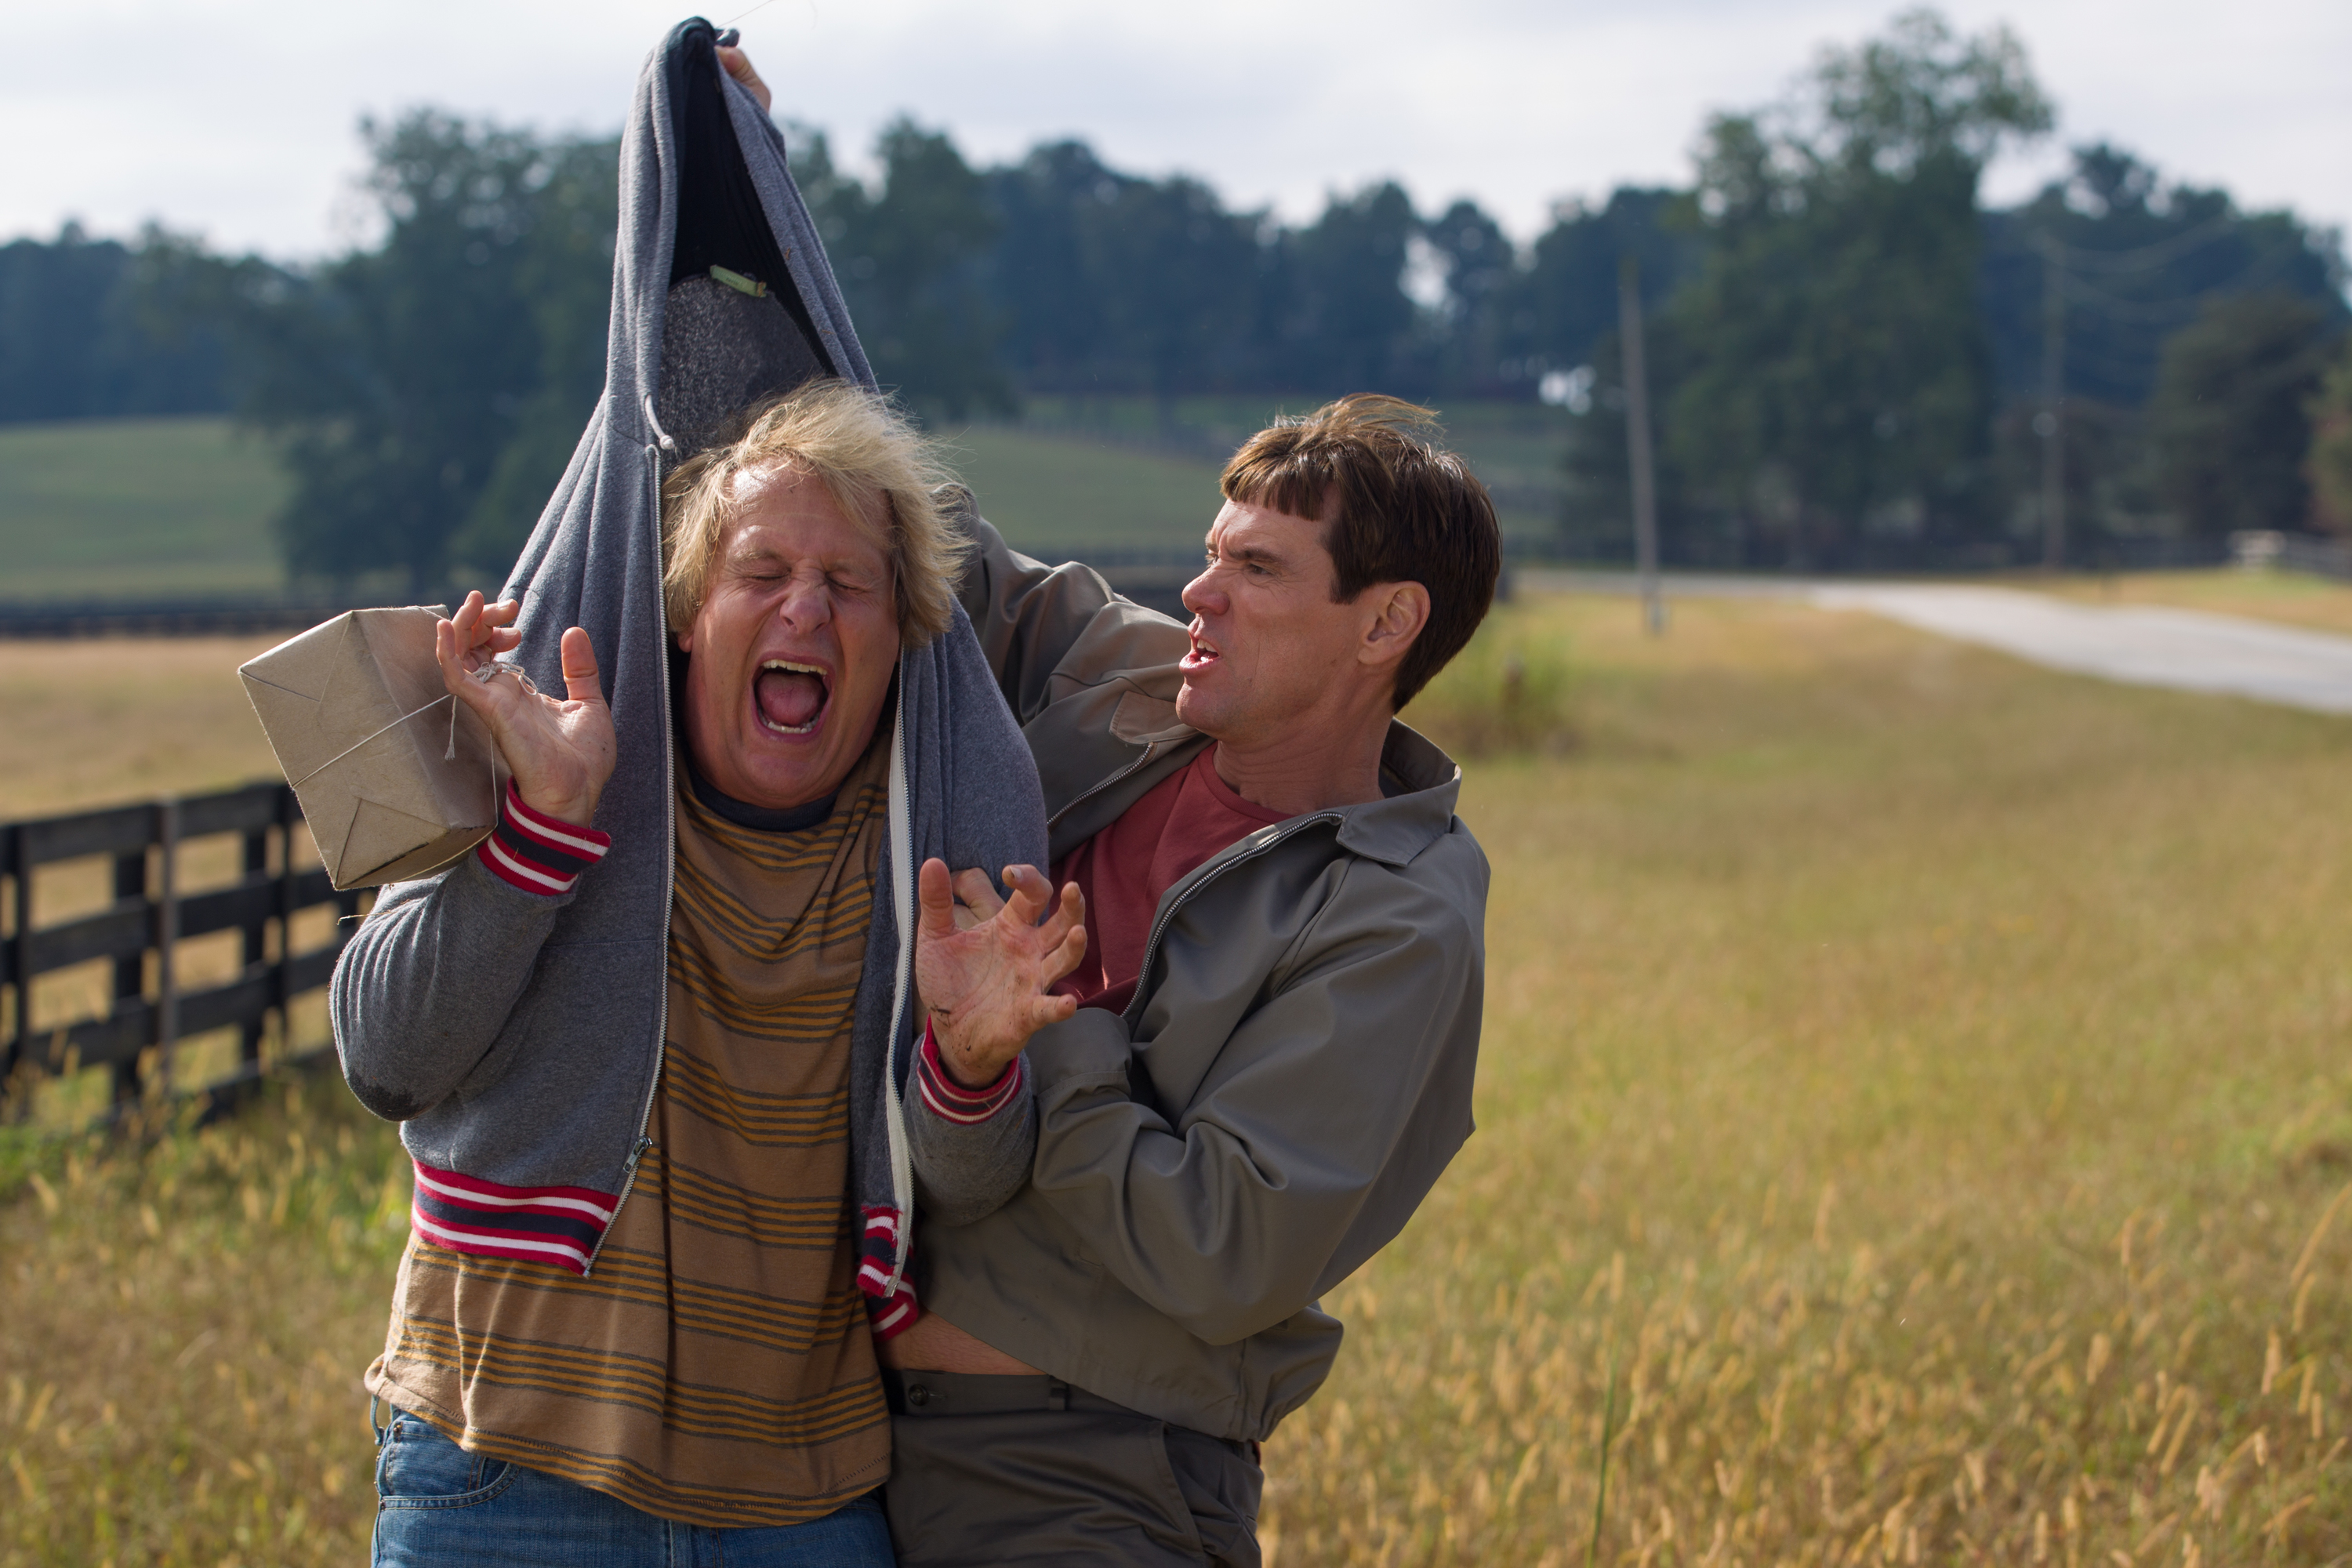 Dumb and Dumber To 2014, directed by Bobby Farrelly and